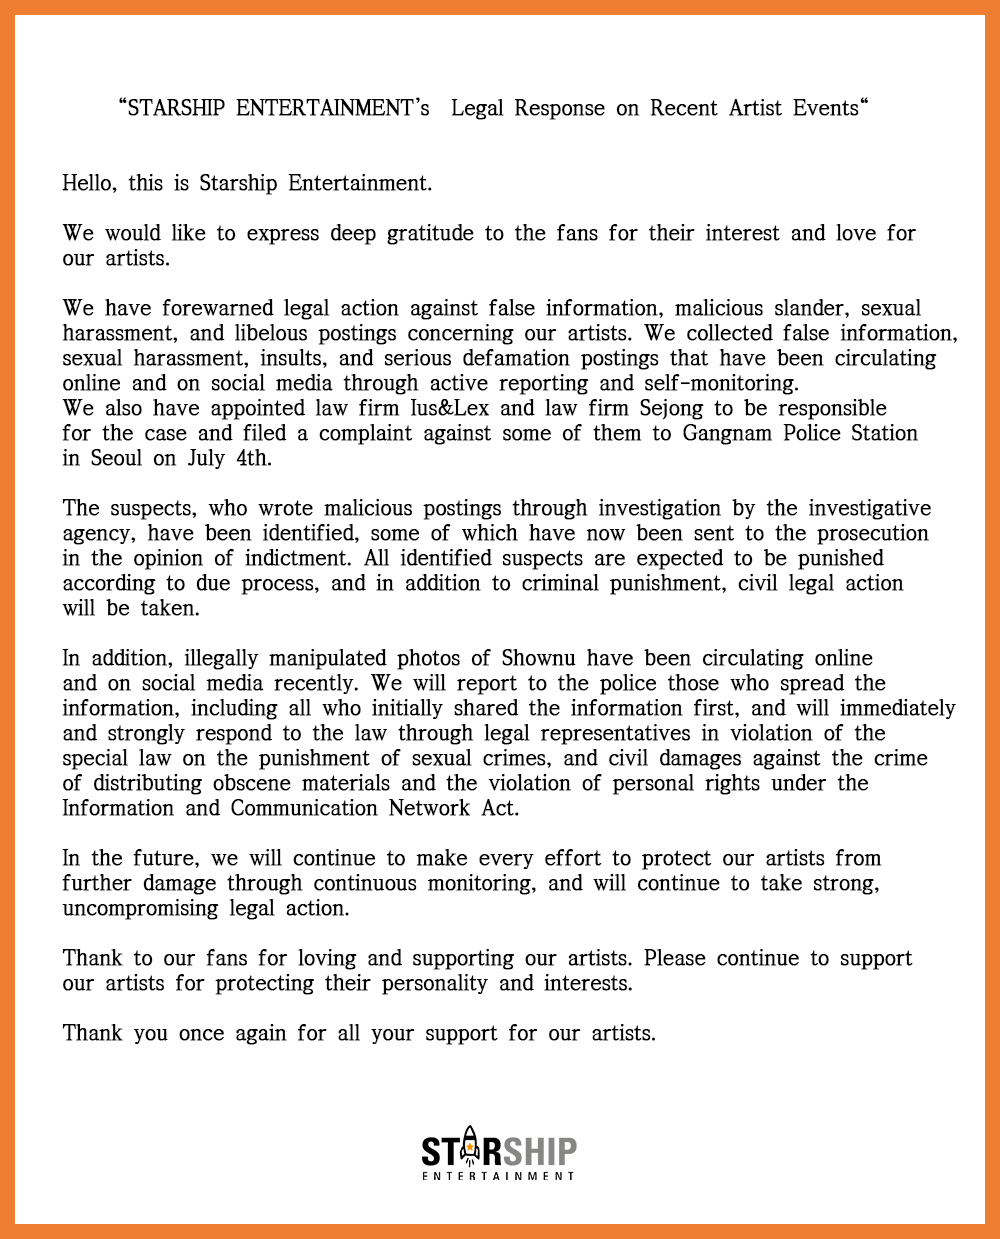 STARSHIP ENTERTAINMENT's Legal Response on Recent Artist Events | From STARSHIP